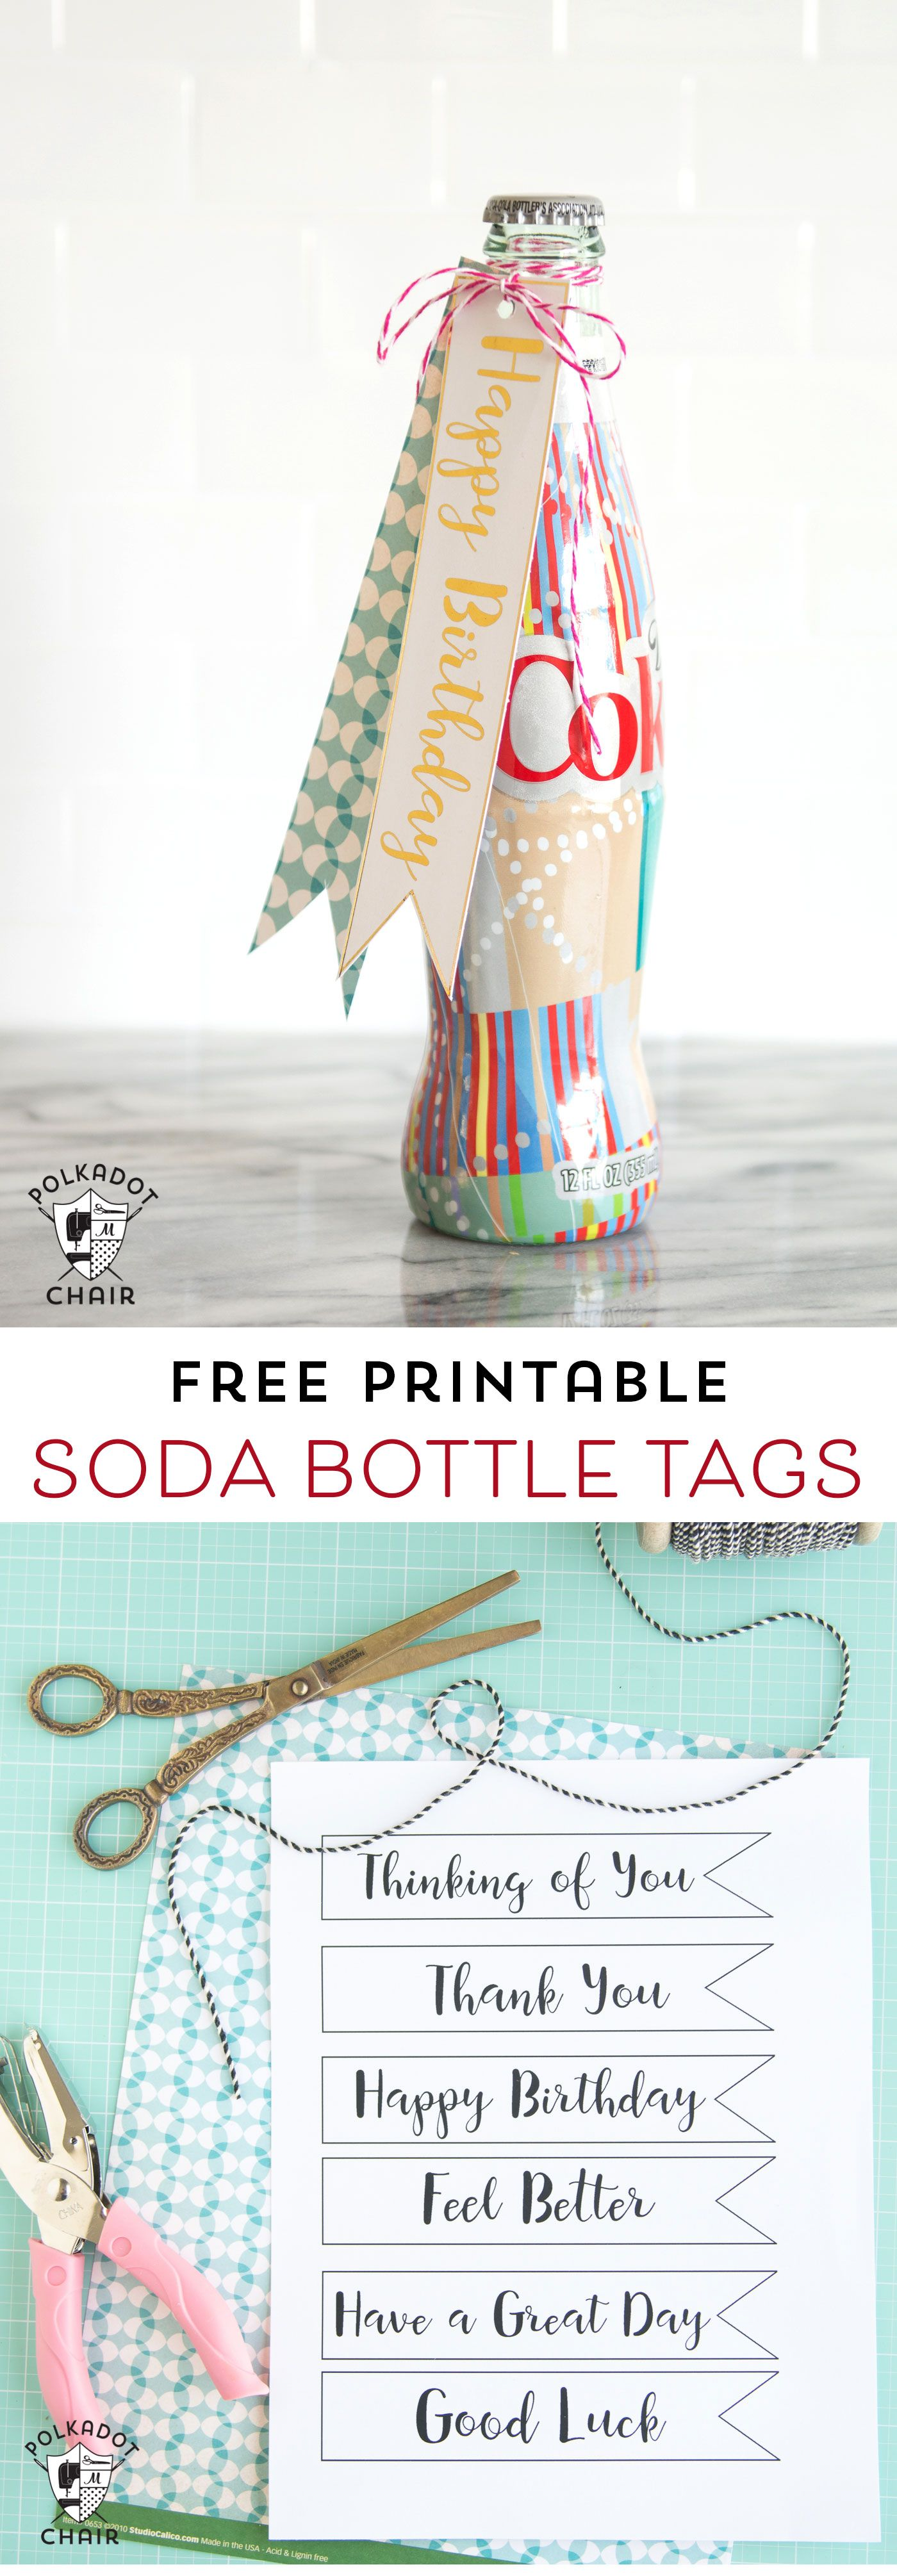 Free Printable Bottle Tags Projects To Try Pinterest Birthday